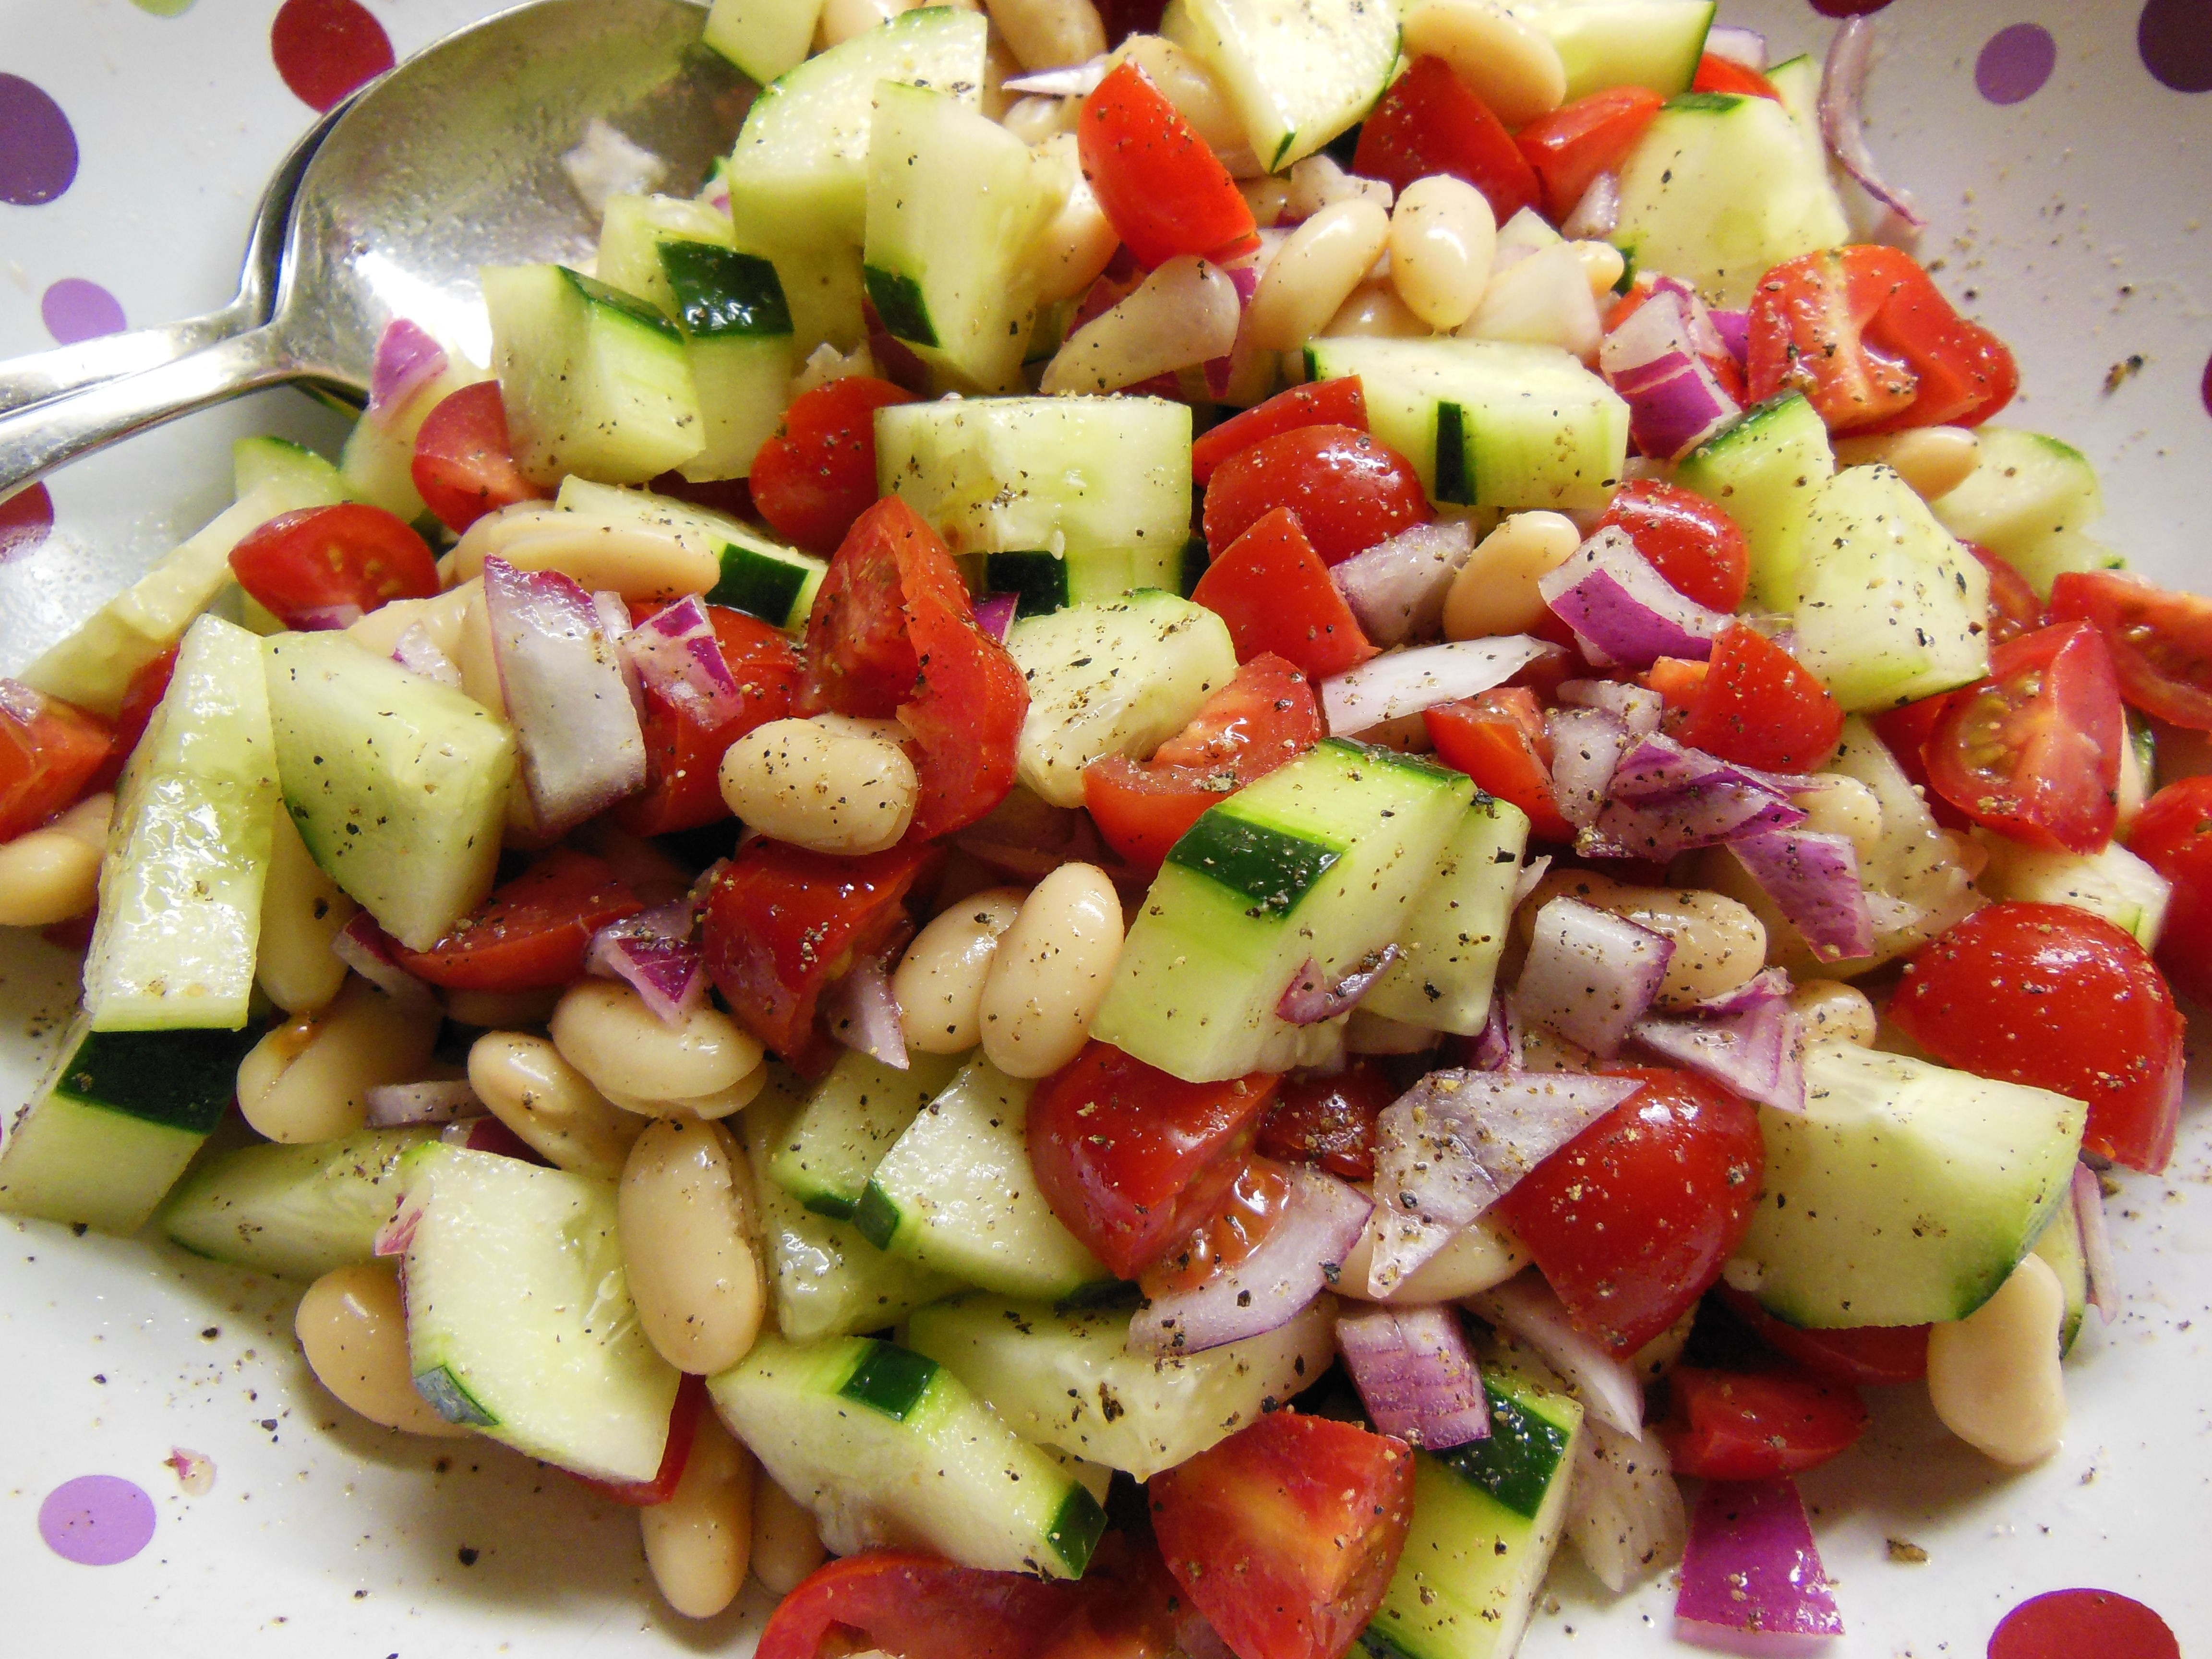 ... Racing Weight Test Kitchen: White Bean, Tomato and Cucumber Salad